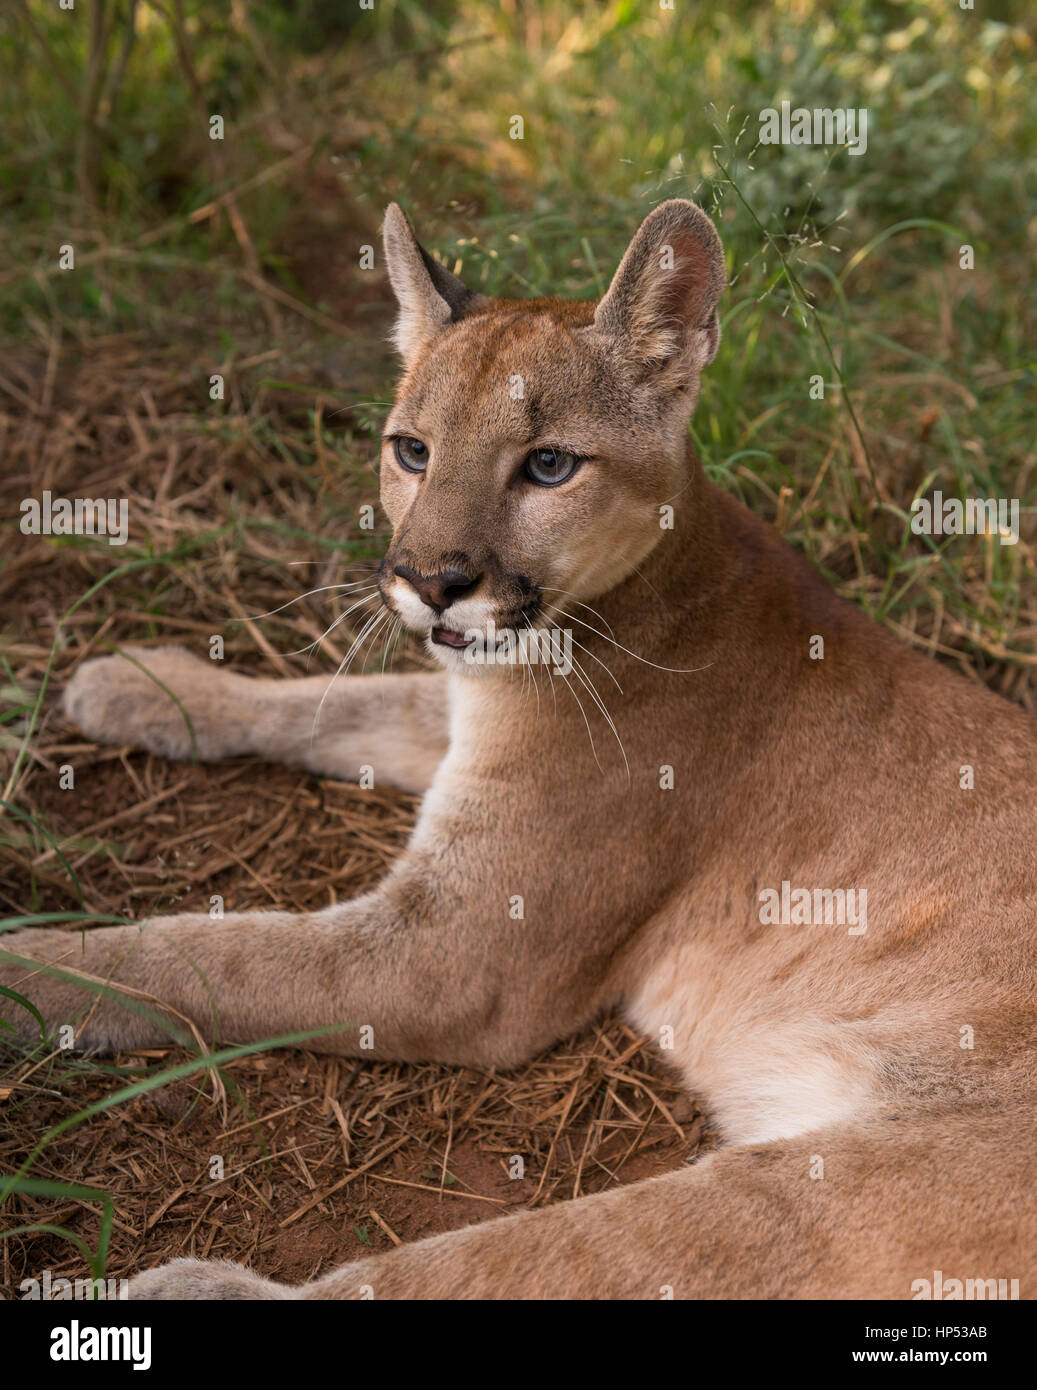 A large Puma cub from Central Brazil Stock Photo